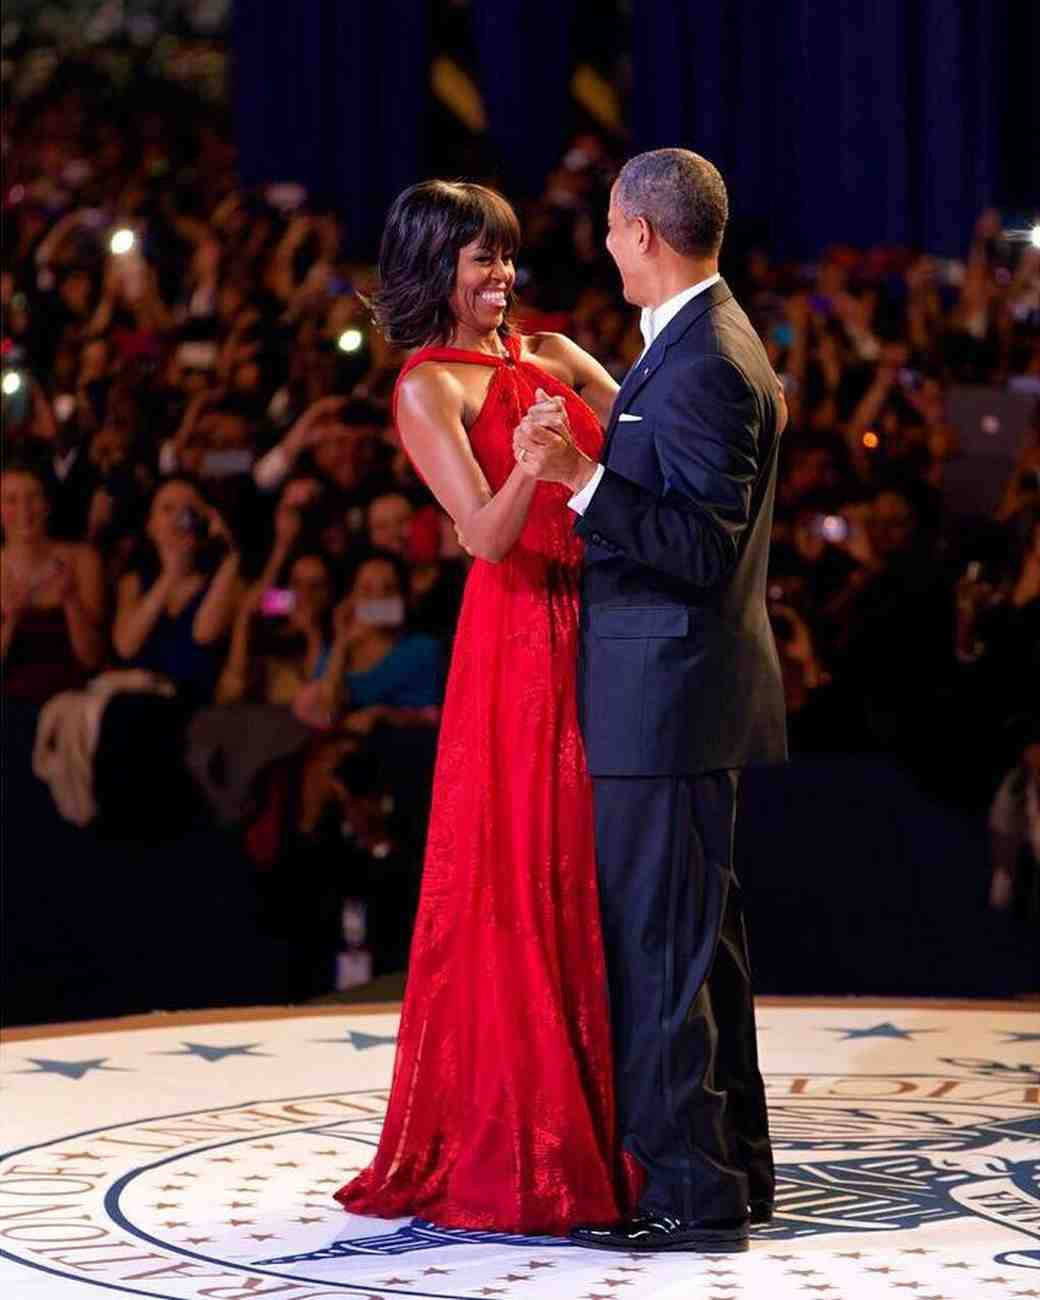 Michelle and Barack Obama Dancing at 2013 Inaugural Ball